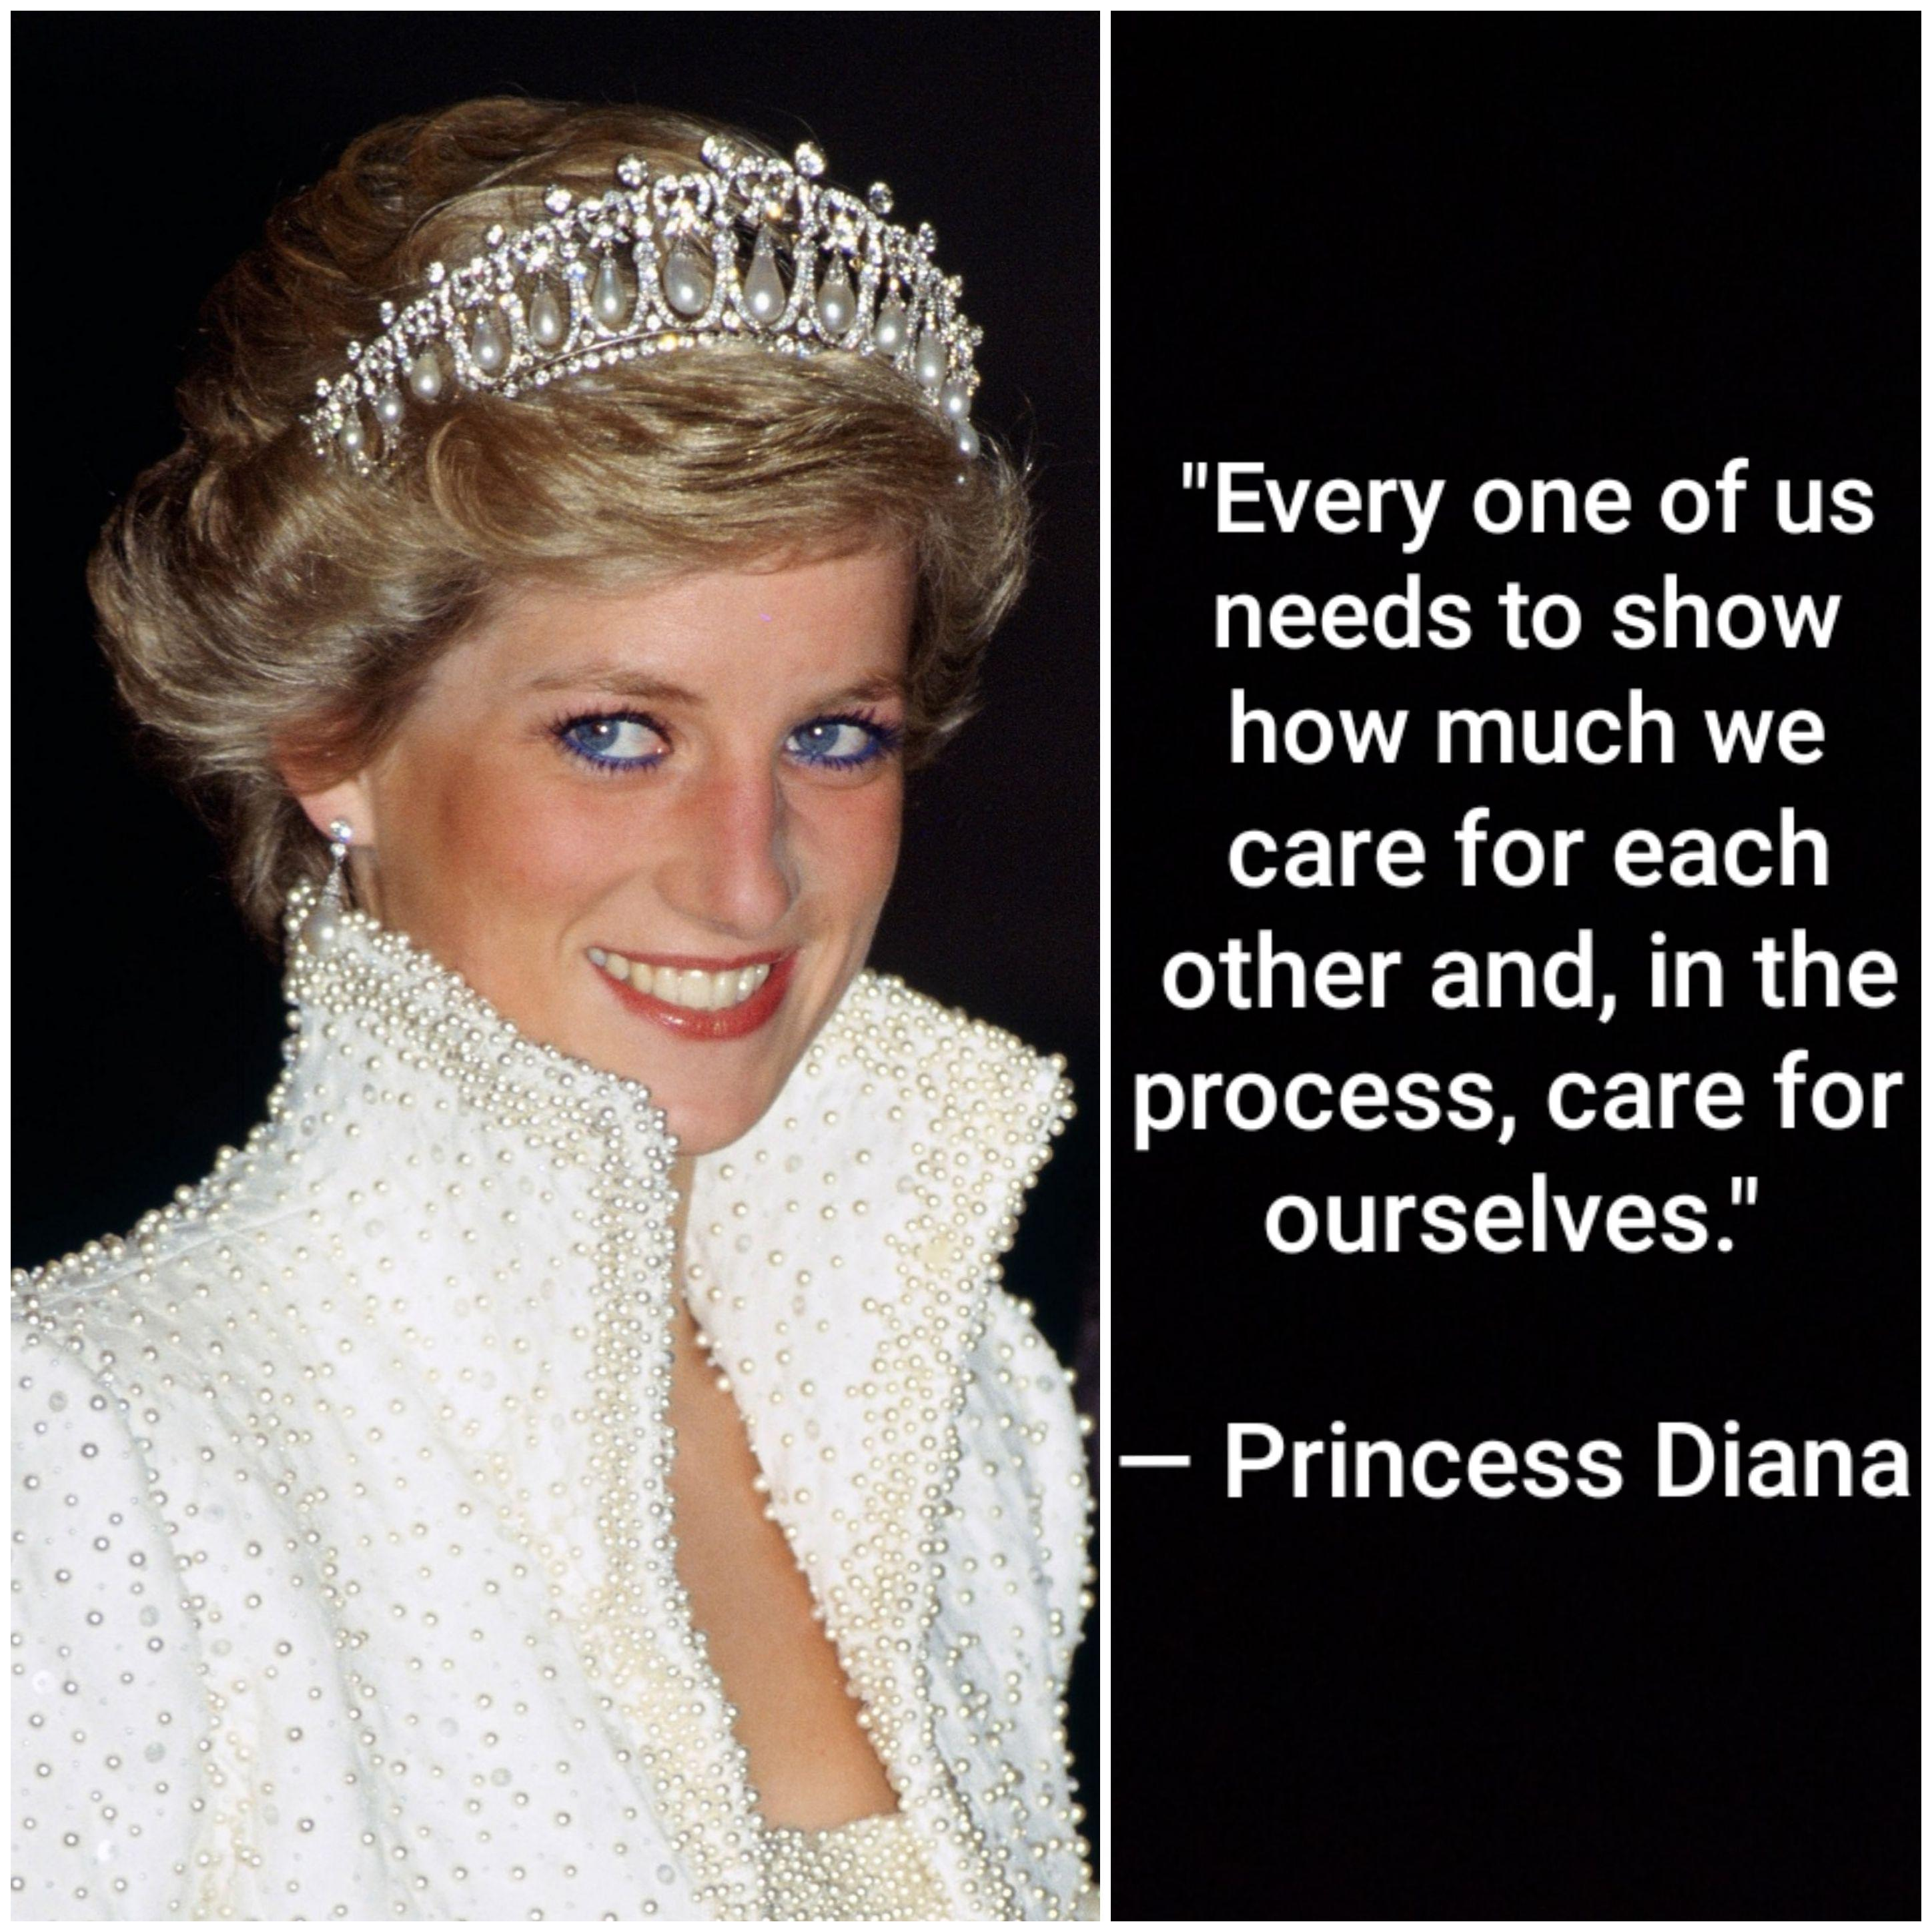 """Every one of us needs to show how much we care for each other and, in the process, care for ourselves."" – Princess Diana [2896×2896]"